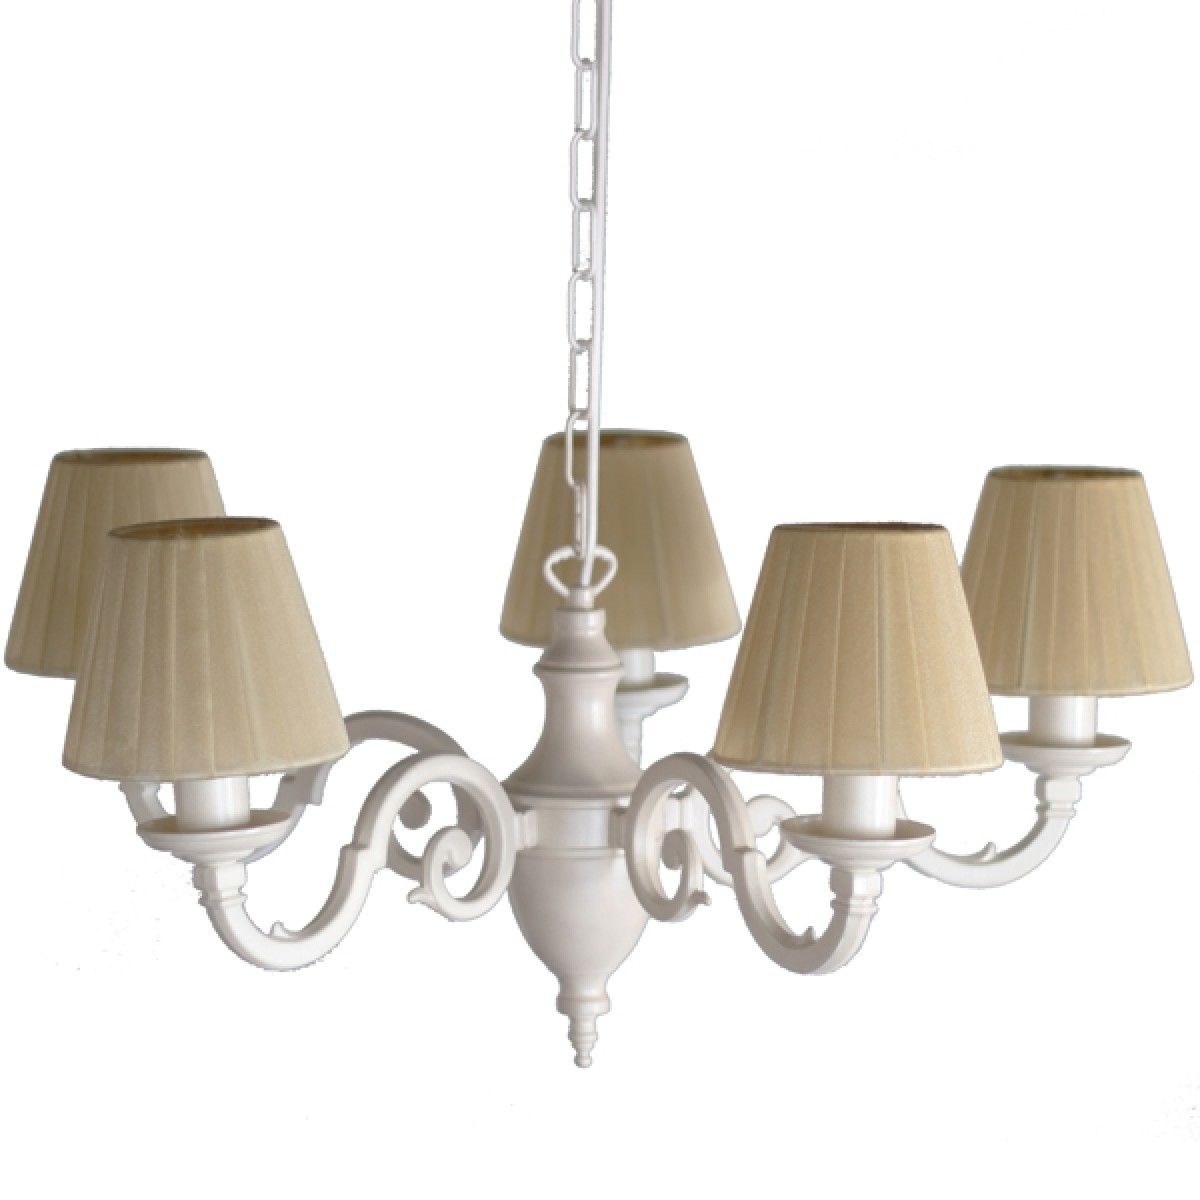 Most Current Light Fitting Chandeliers Pertaining To Bedroom Light Fitting Chandelier (View 4 of 20)